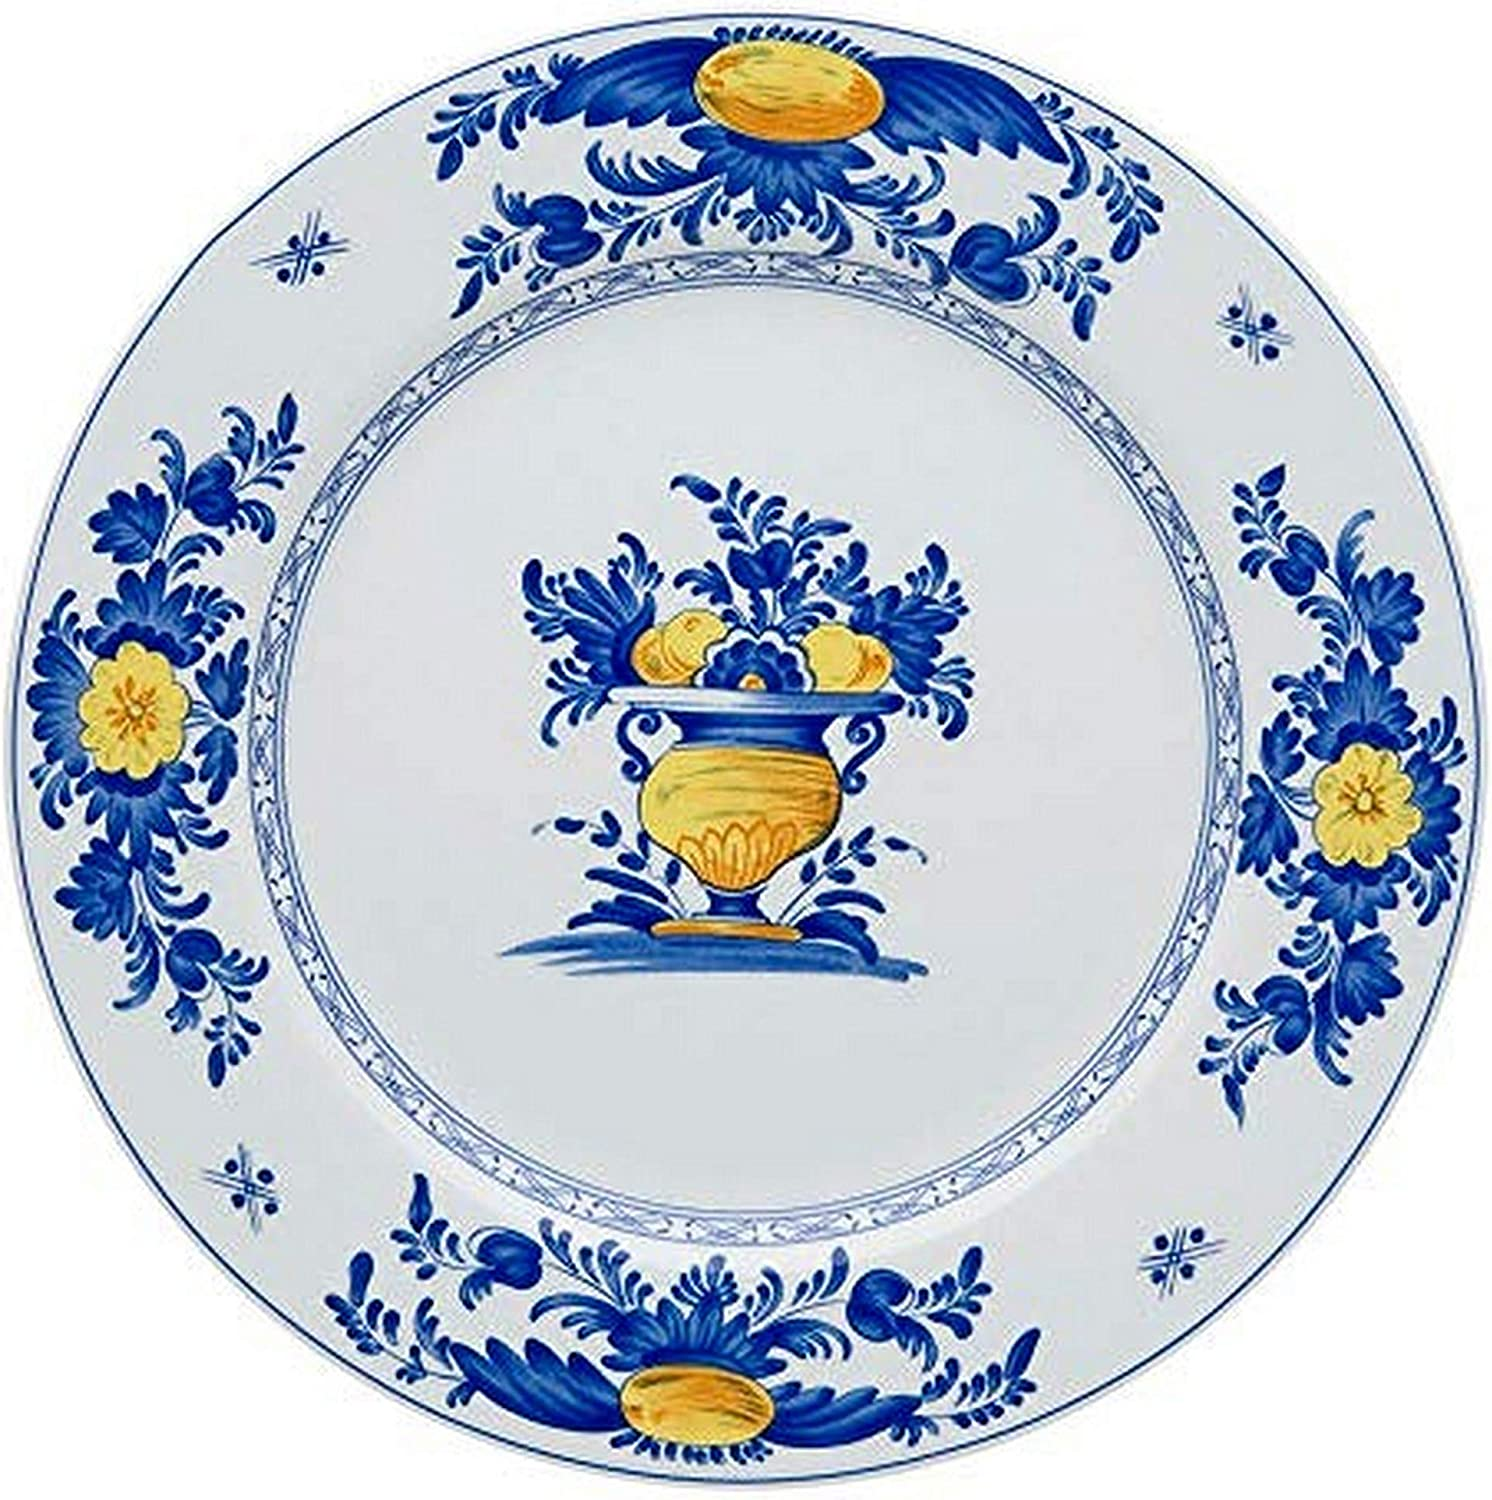 Vista Alegre Viana Porcelain Dinner Now free shipping Plate of Year-end gift Set 4